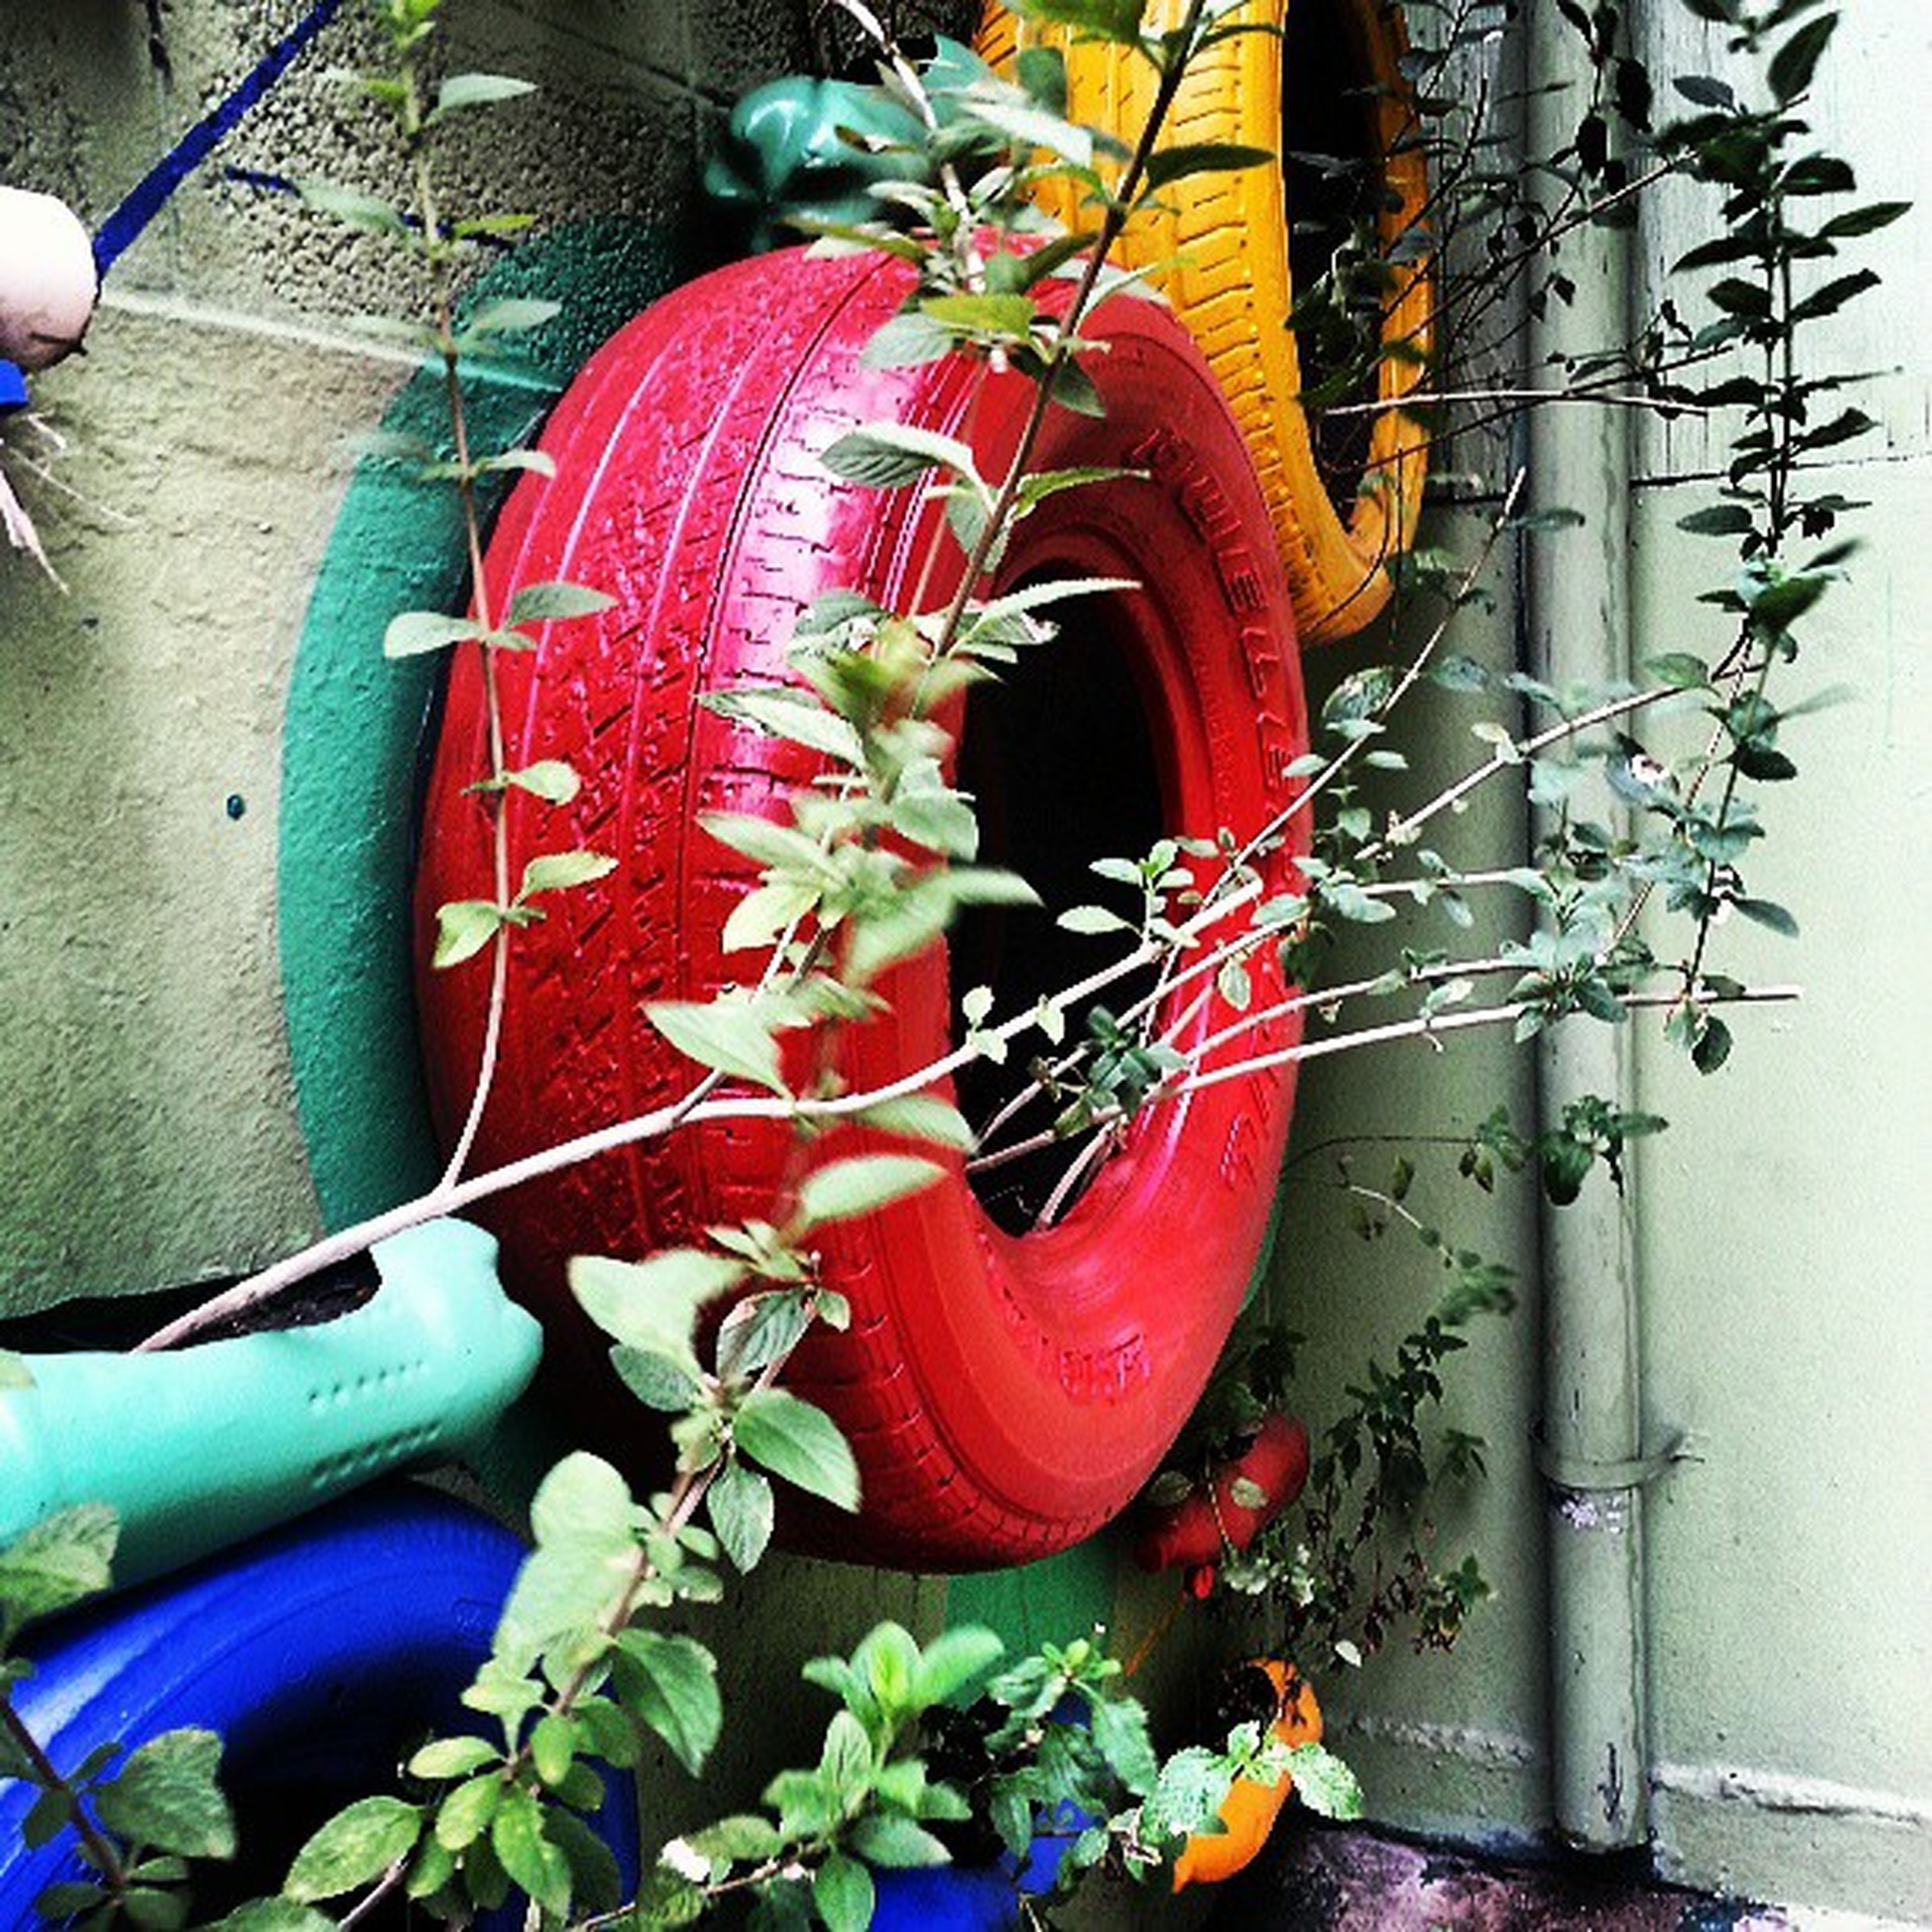 wall - building feature, built structure, potted plant, plant, red, architecture, building exterior, no people, metal, day, wall, outdoors, bicycle, hanging, multi colored, house, graffiti, close-up, art, wheel